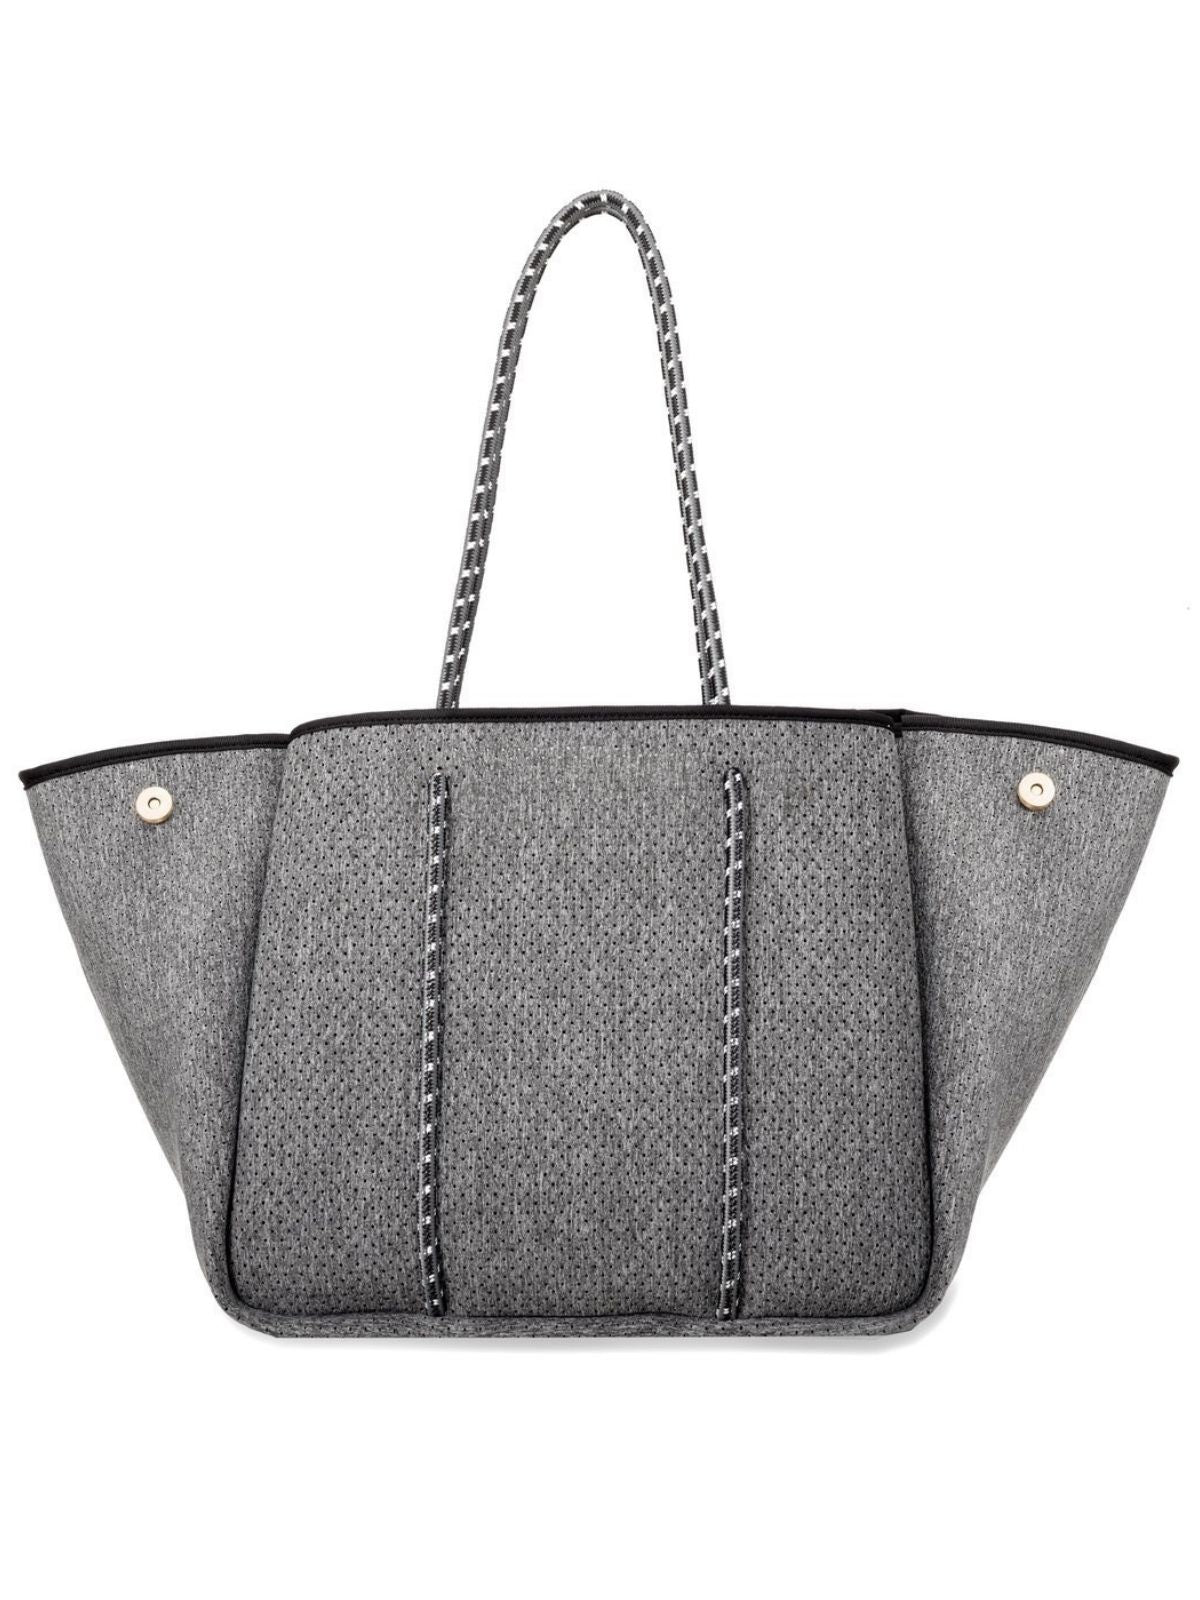 Neoprene Tote - Dark Heather with Charcoal Straps